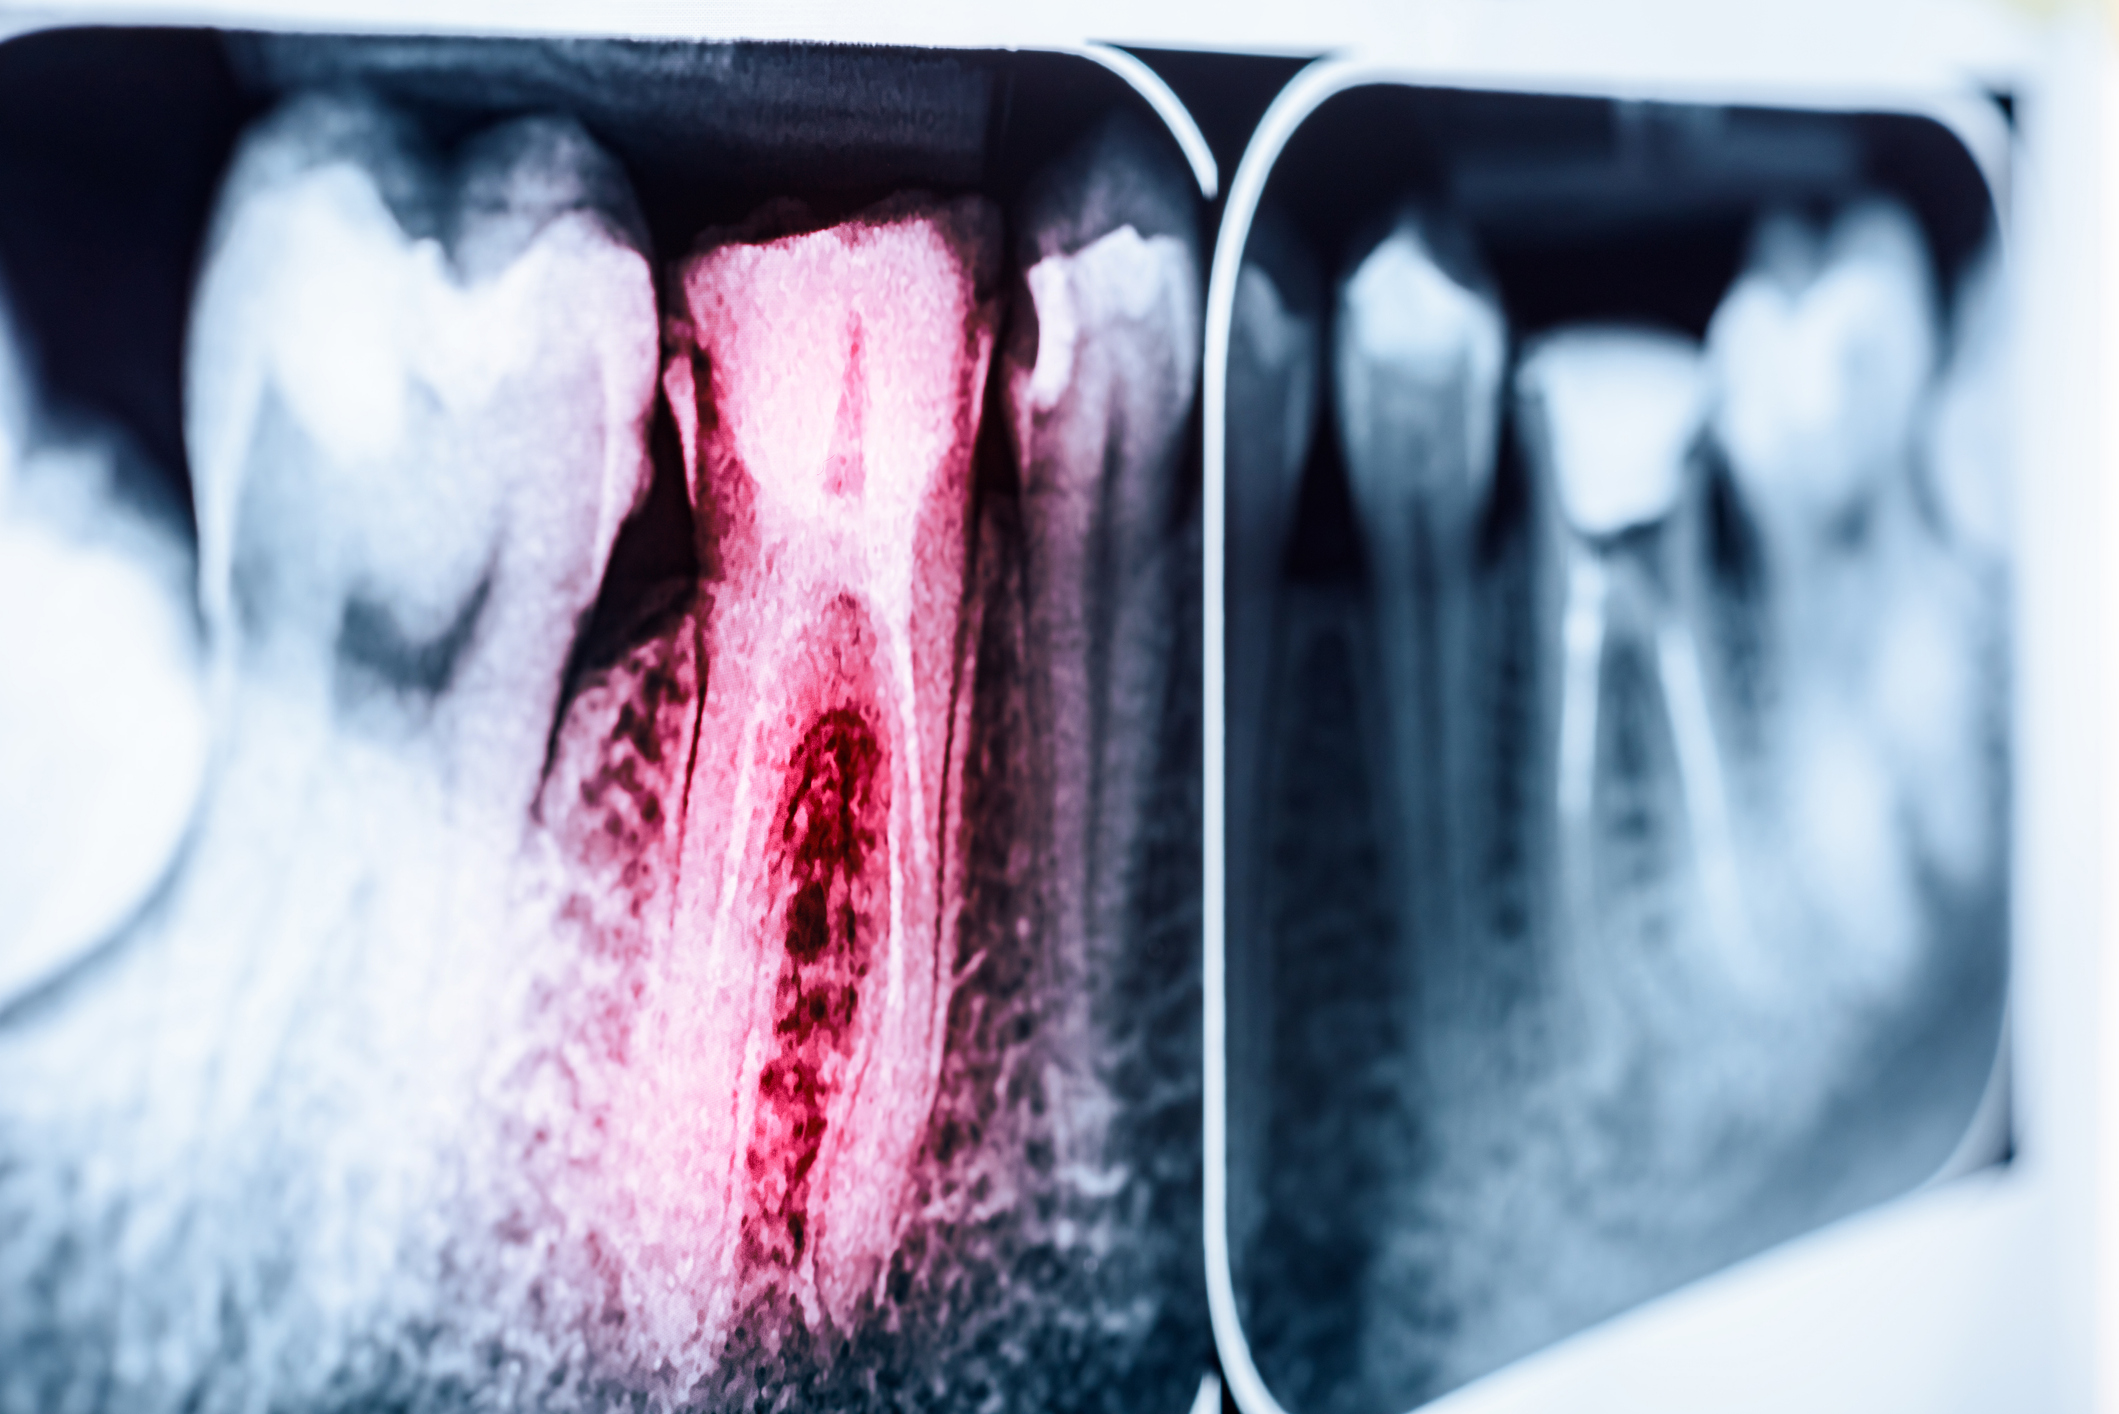 Pain Of Tooth Decay On X-Ray